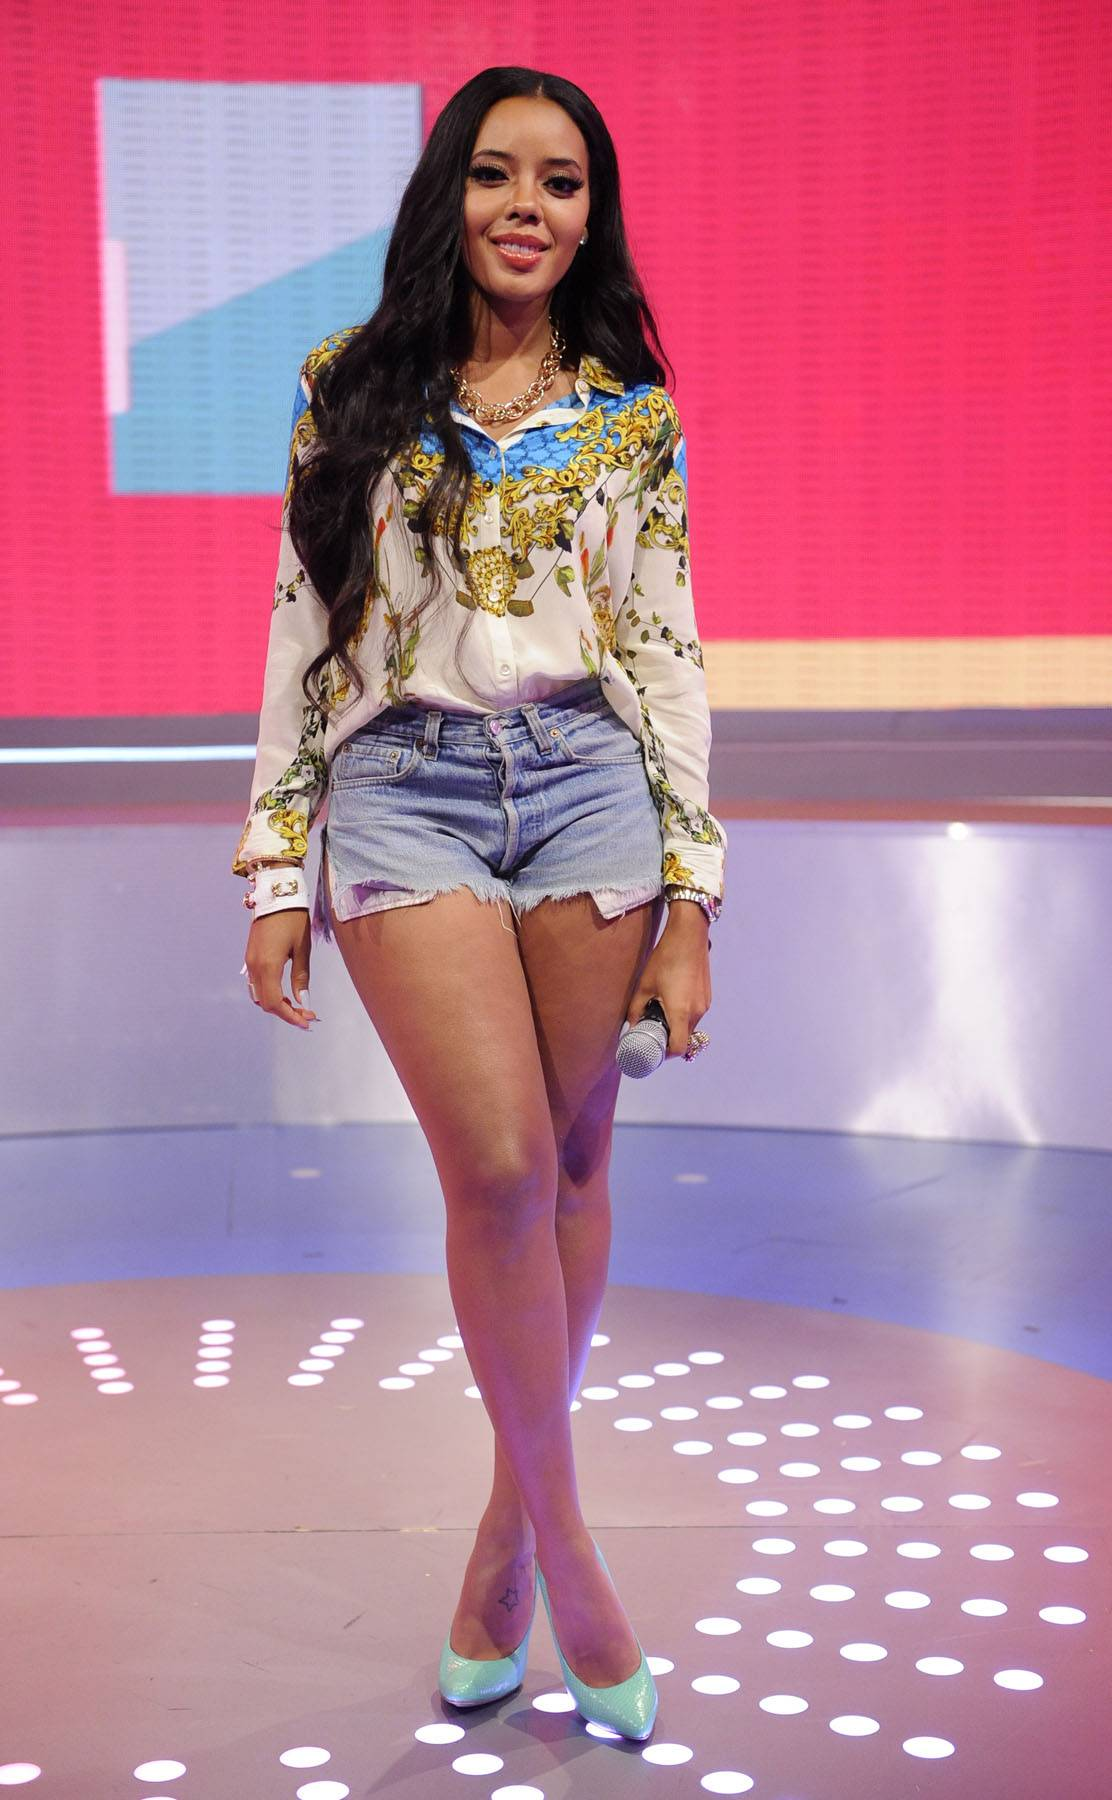 Long Hair, Don't Care - A beautifully embellished silk top with jean shorts and aqua pumps kept Angela's outfit dressy casual and could easily turn her day look into something for the night. (Photo: John Ricard/BET/Getty Images for BET)